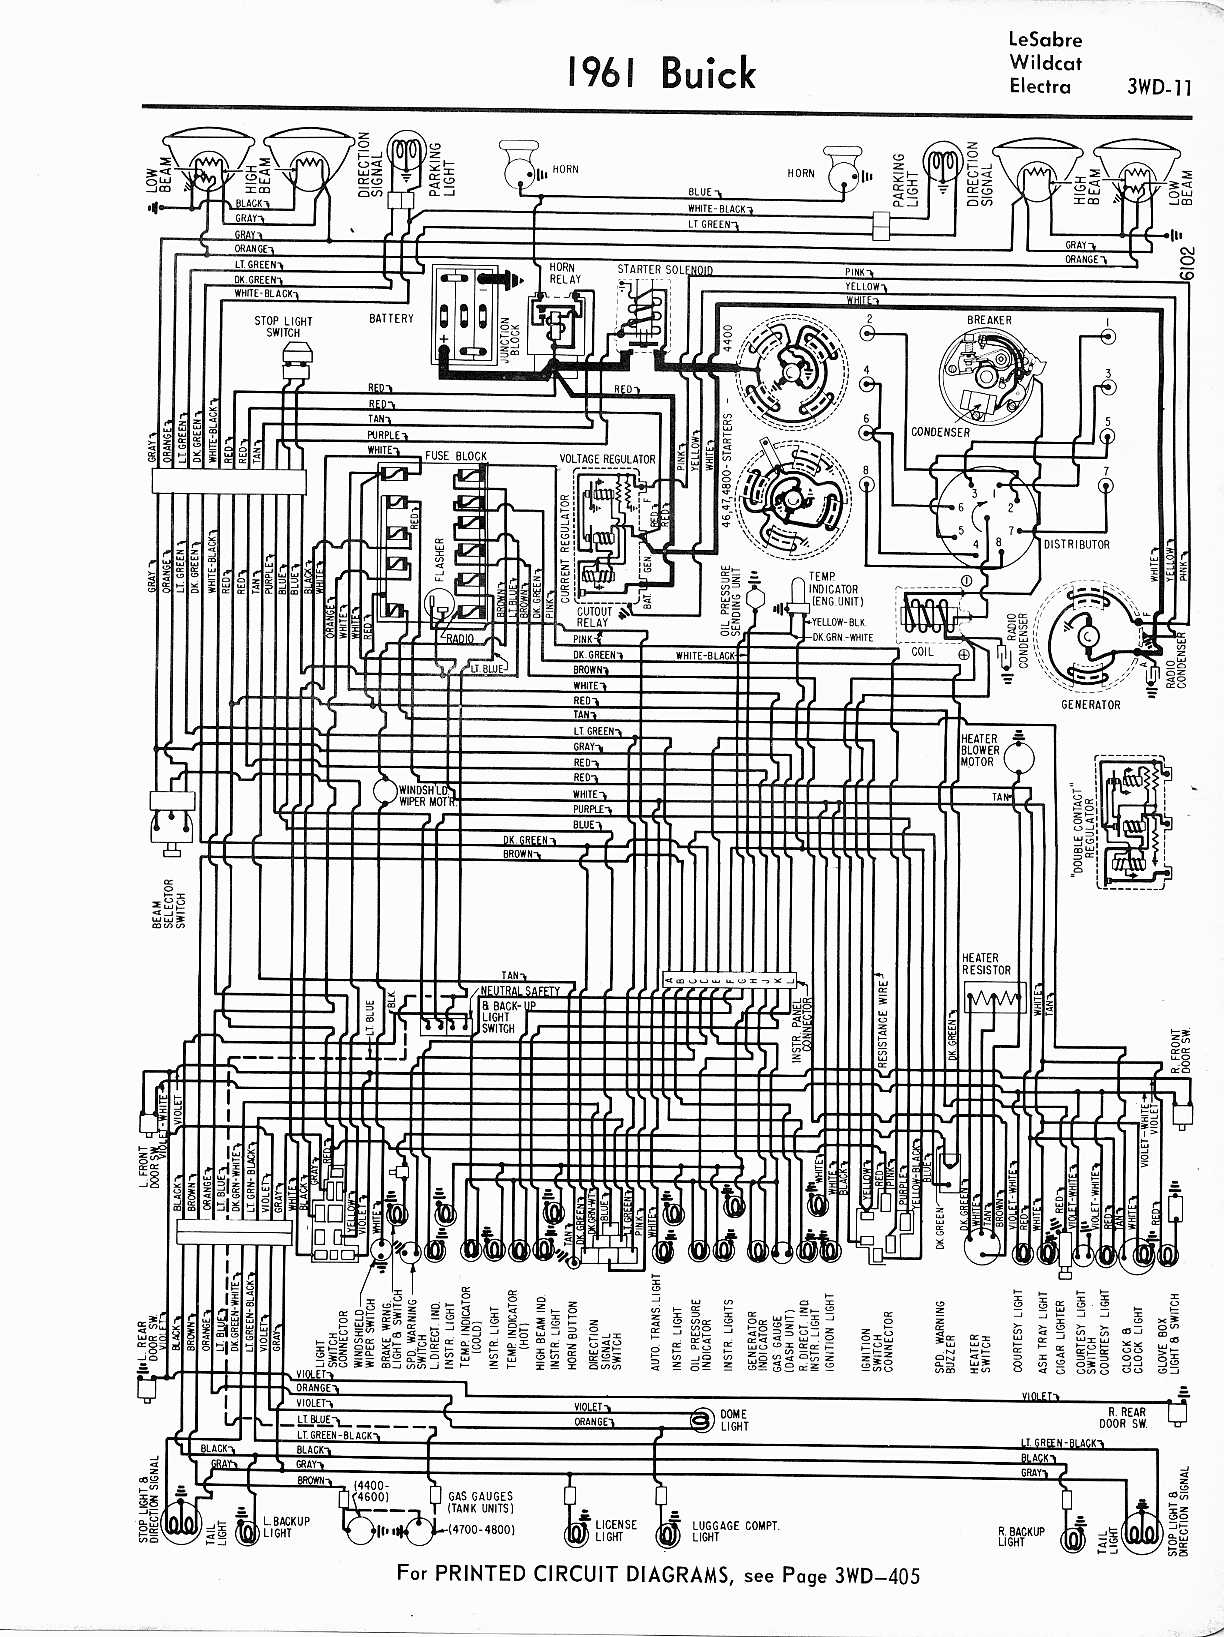 MWireBuic65_3WD 011 buick wiring diagrams 1957 1965 1999 buick century wiring diagram at crackthecode.co